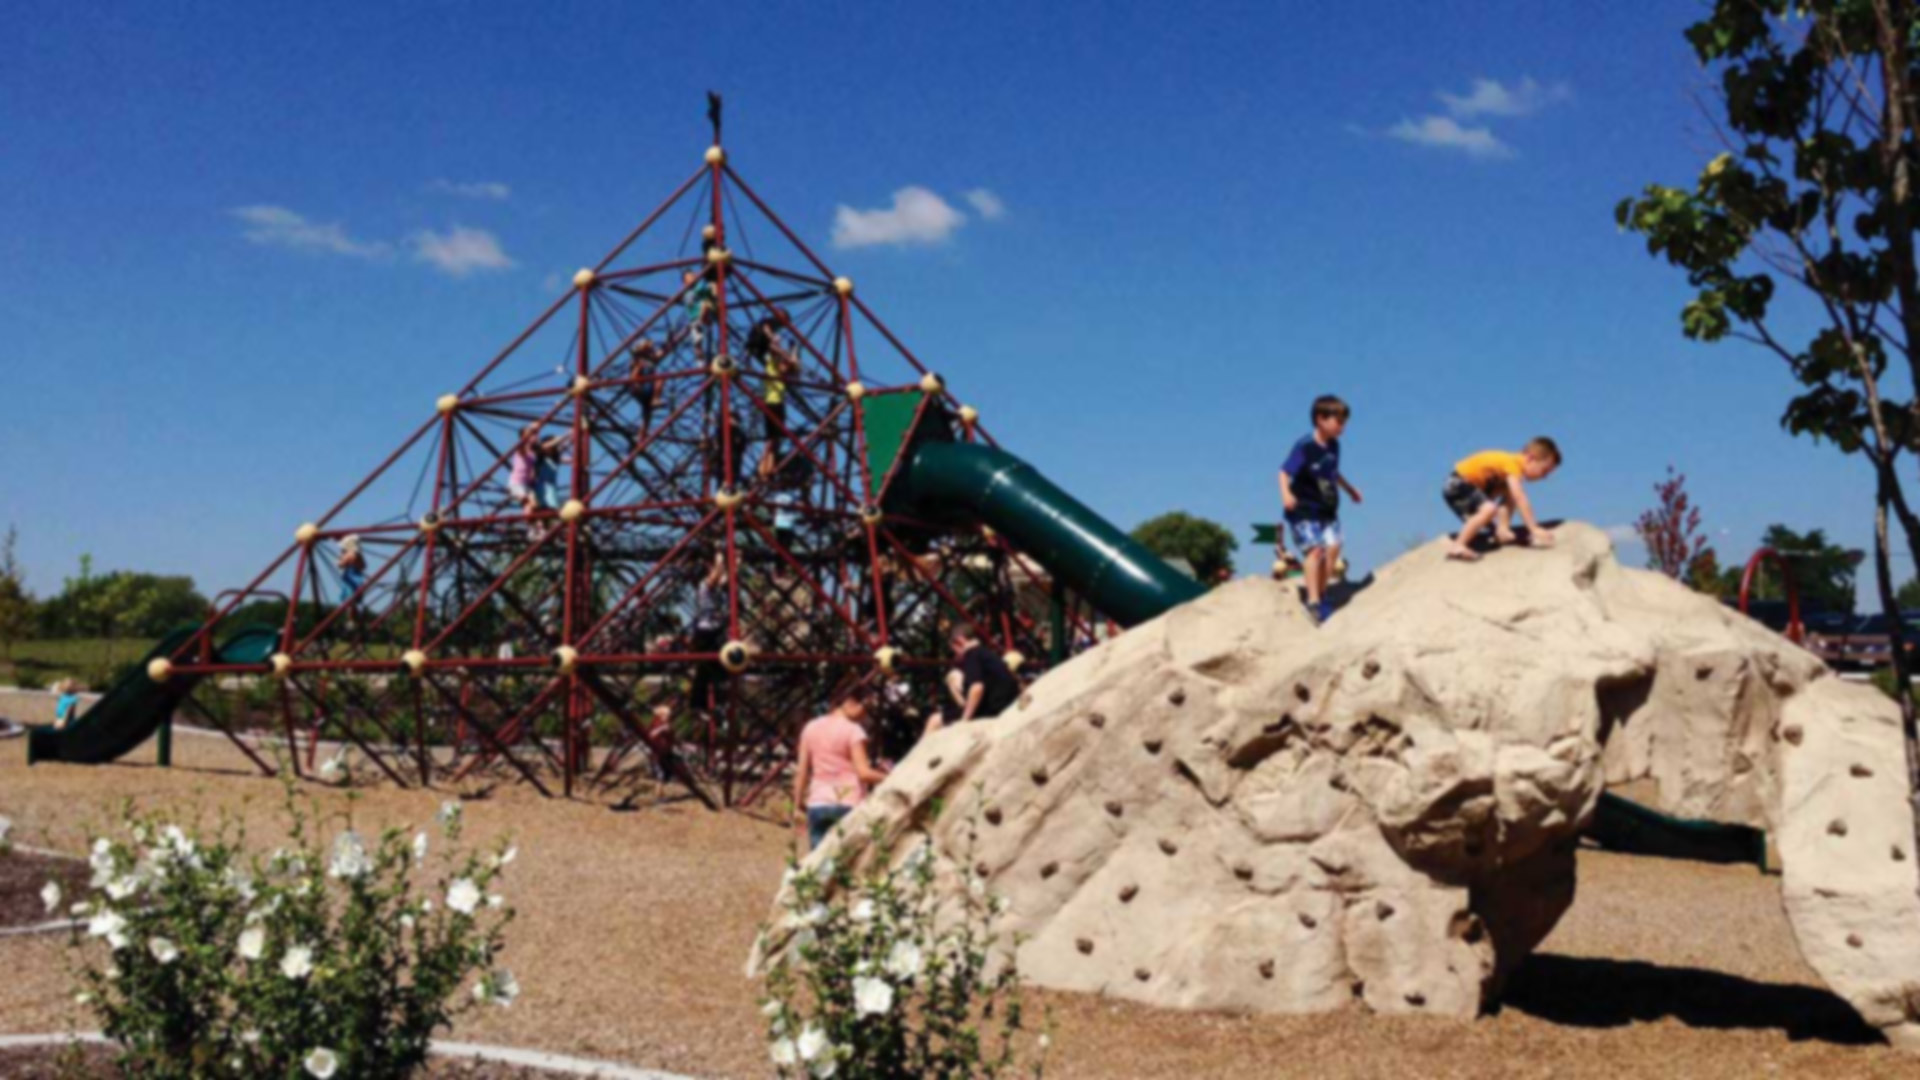 kids climbing on a rock sculpture and rope playground